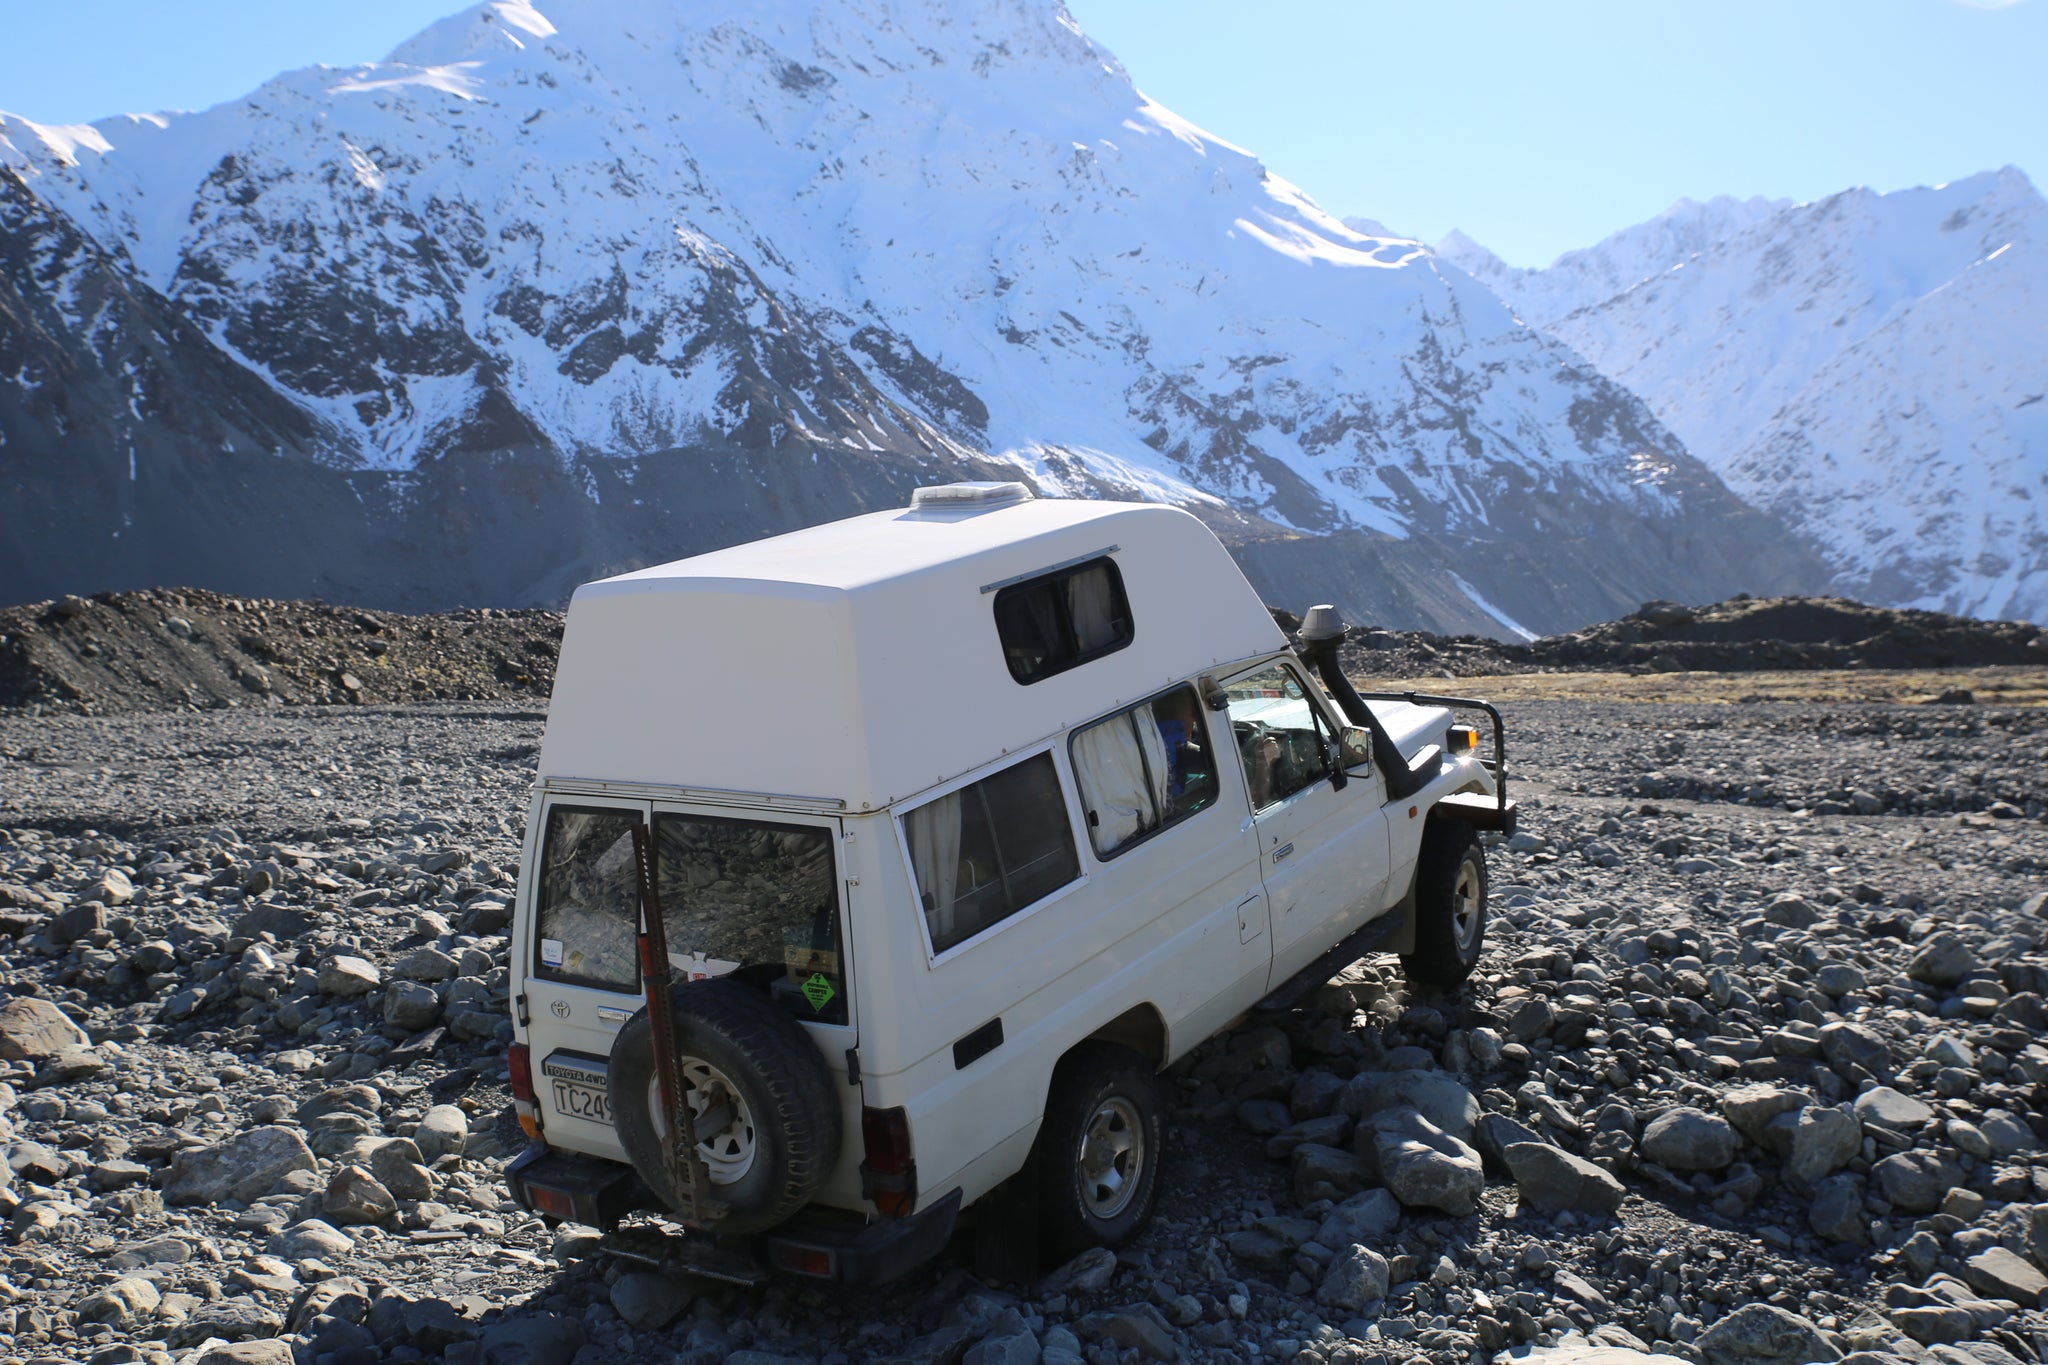 Mudstuck with Landcruiser Troopy on Godly 4wd track south island